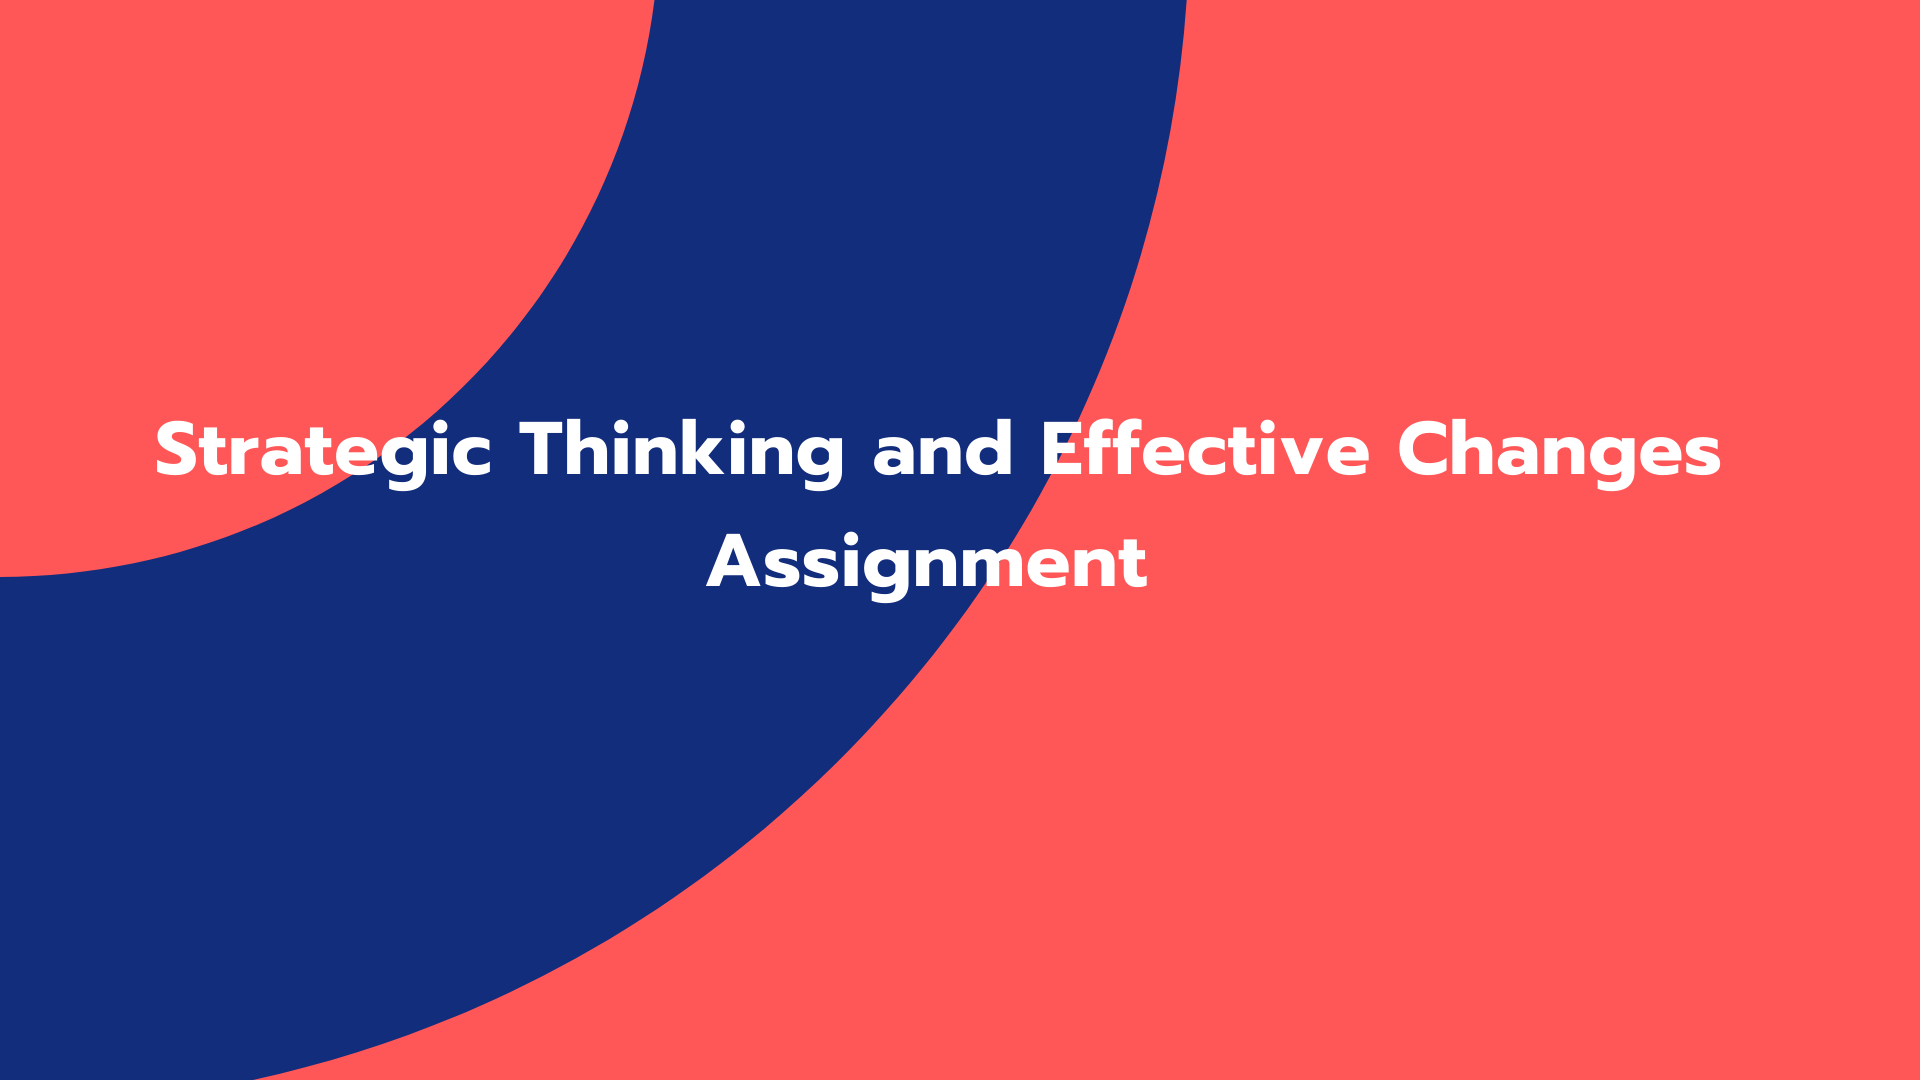 Strategic Thinking and Effective Changes Assignment